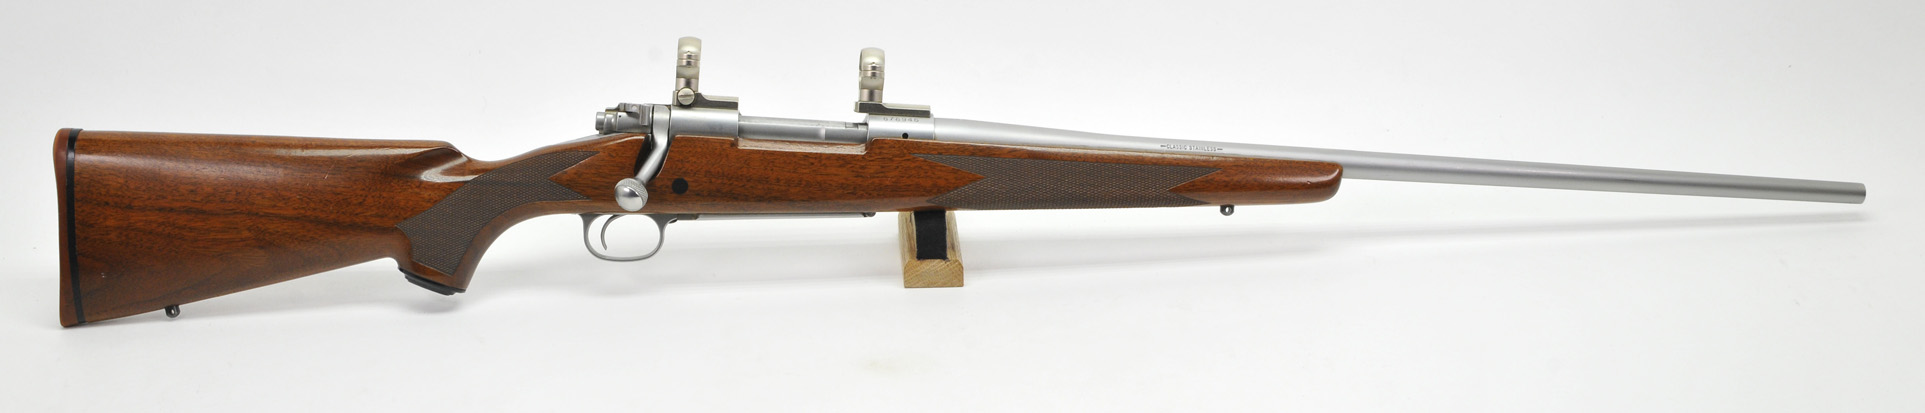 winchester model 70 classic stainless